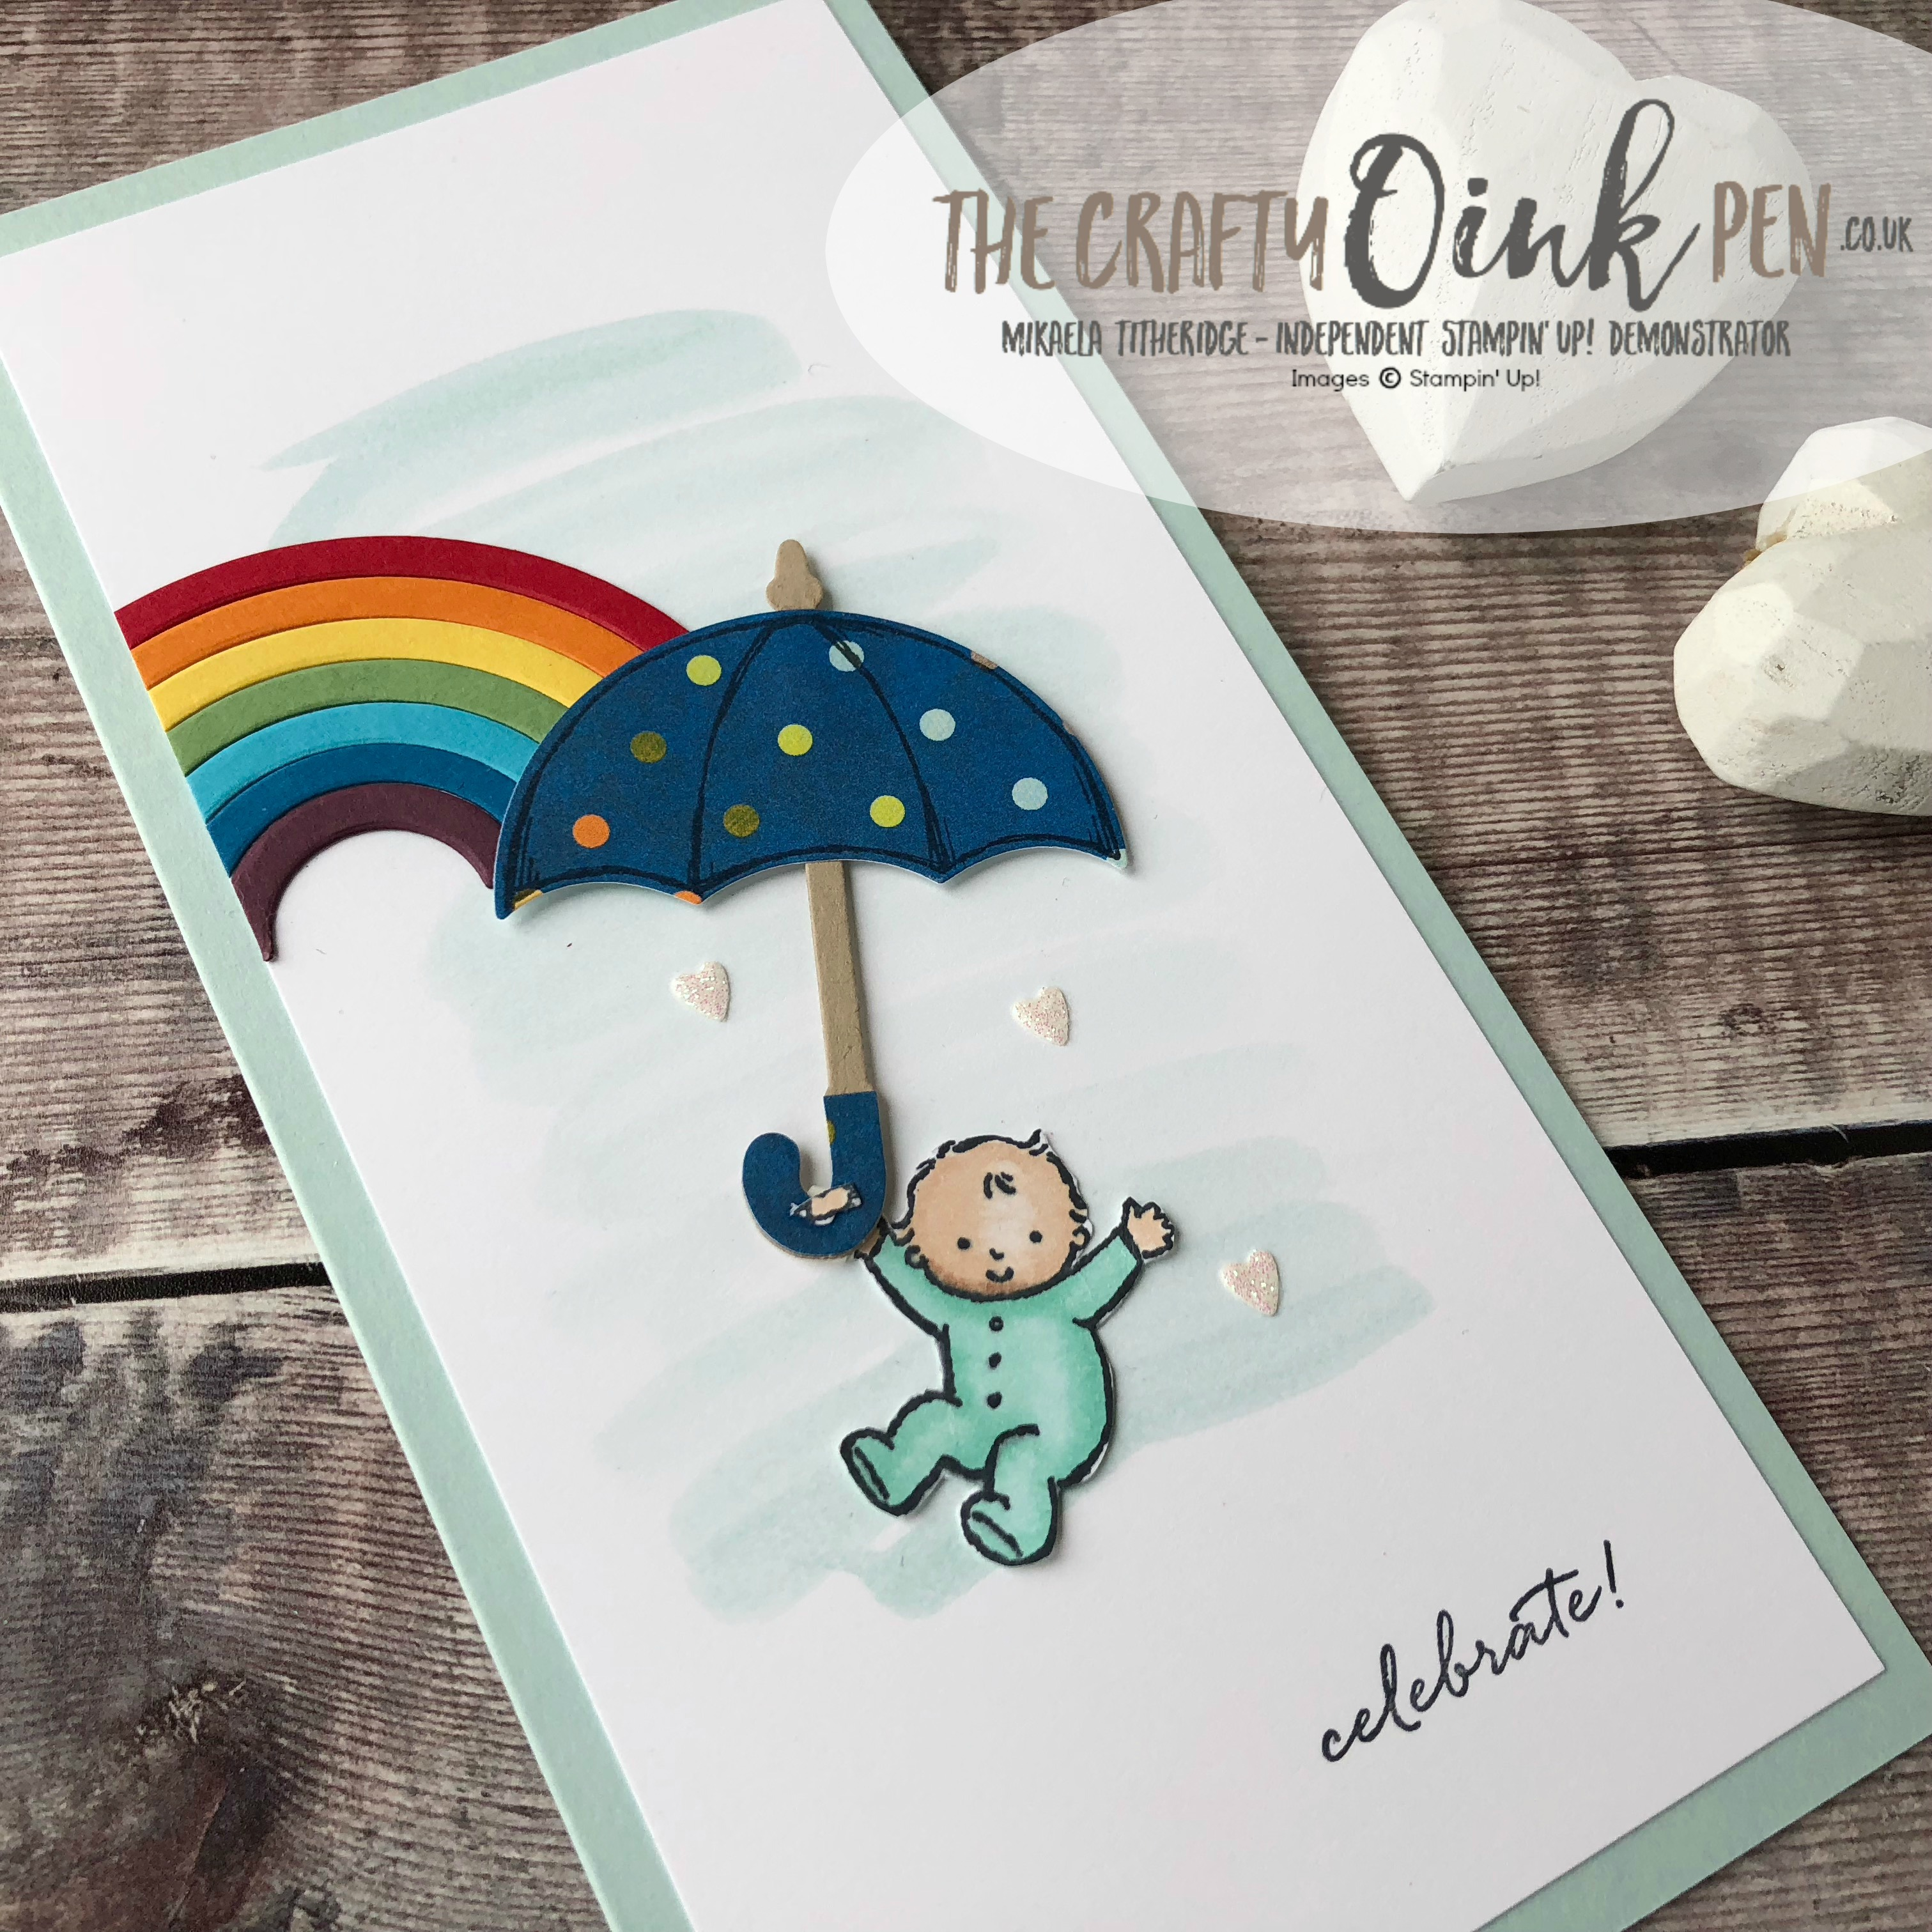 Weather Together with Rainbow Framelits and Moon Baby for the Royal Baby by Mikaela Titheridge, #6UK Independent Stampin' Up! Demonstrator, The Crafty oINK Pen. Supplies available through my online store 24/7